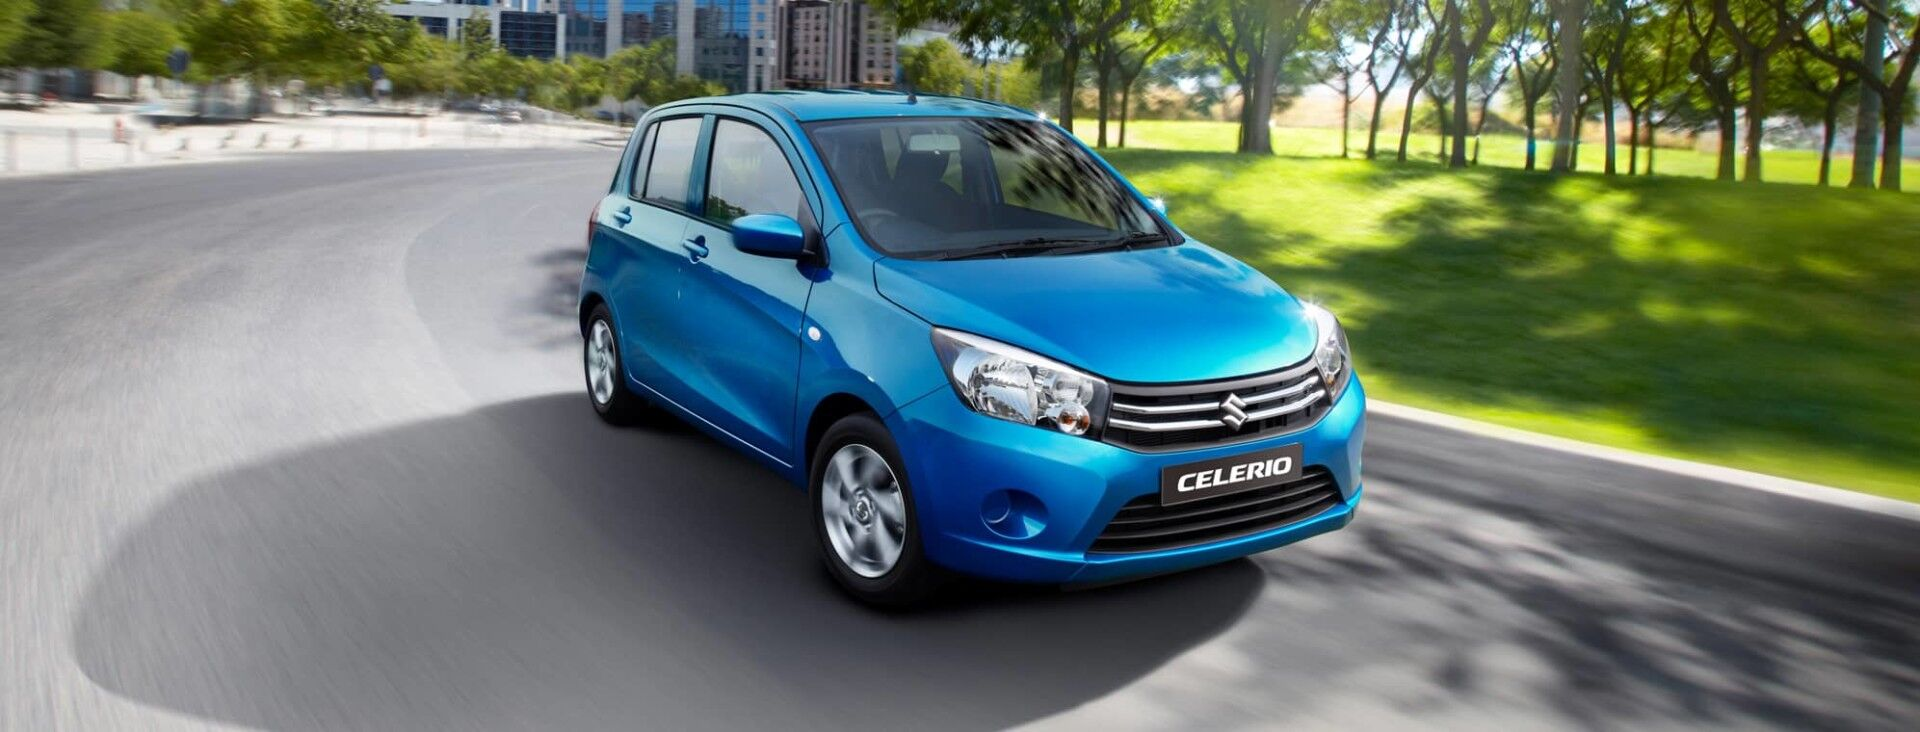 celerio video thumb